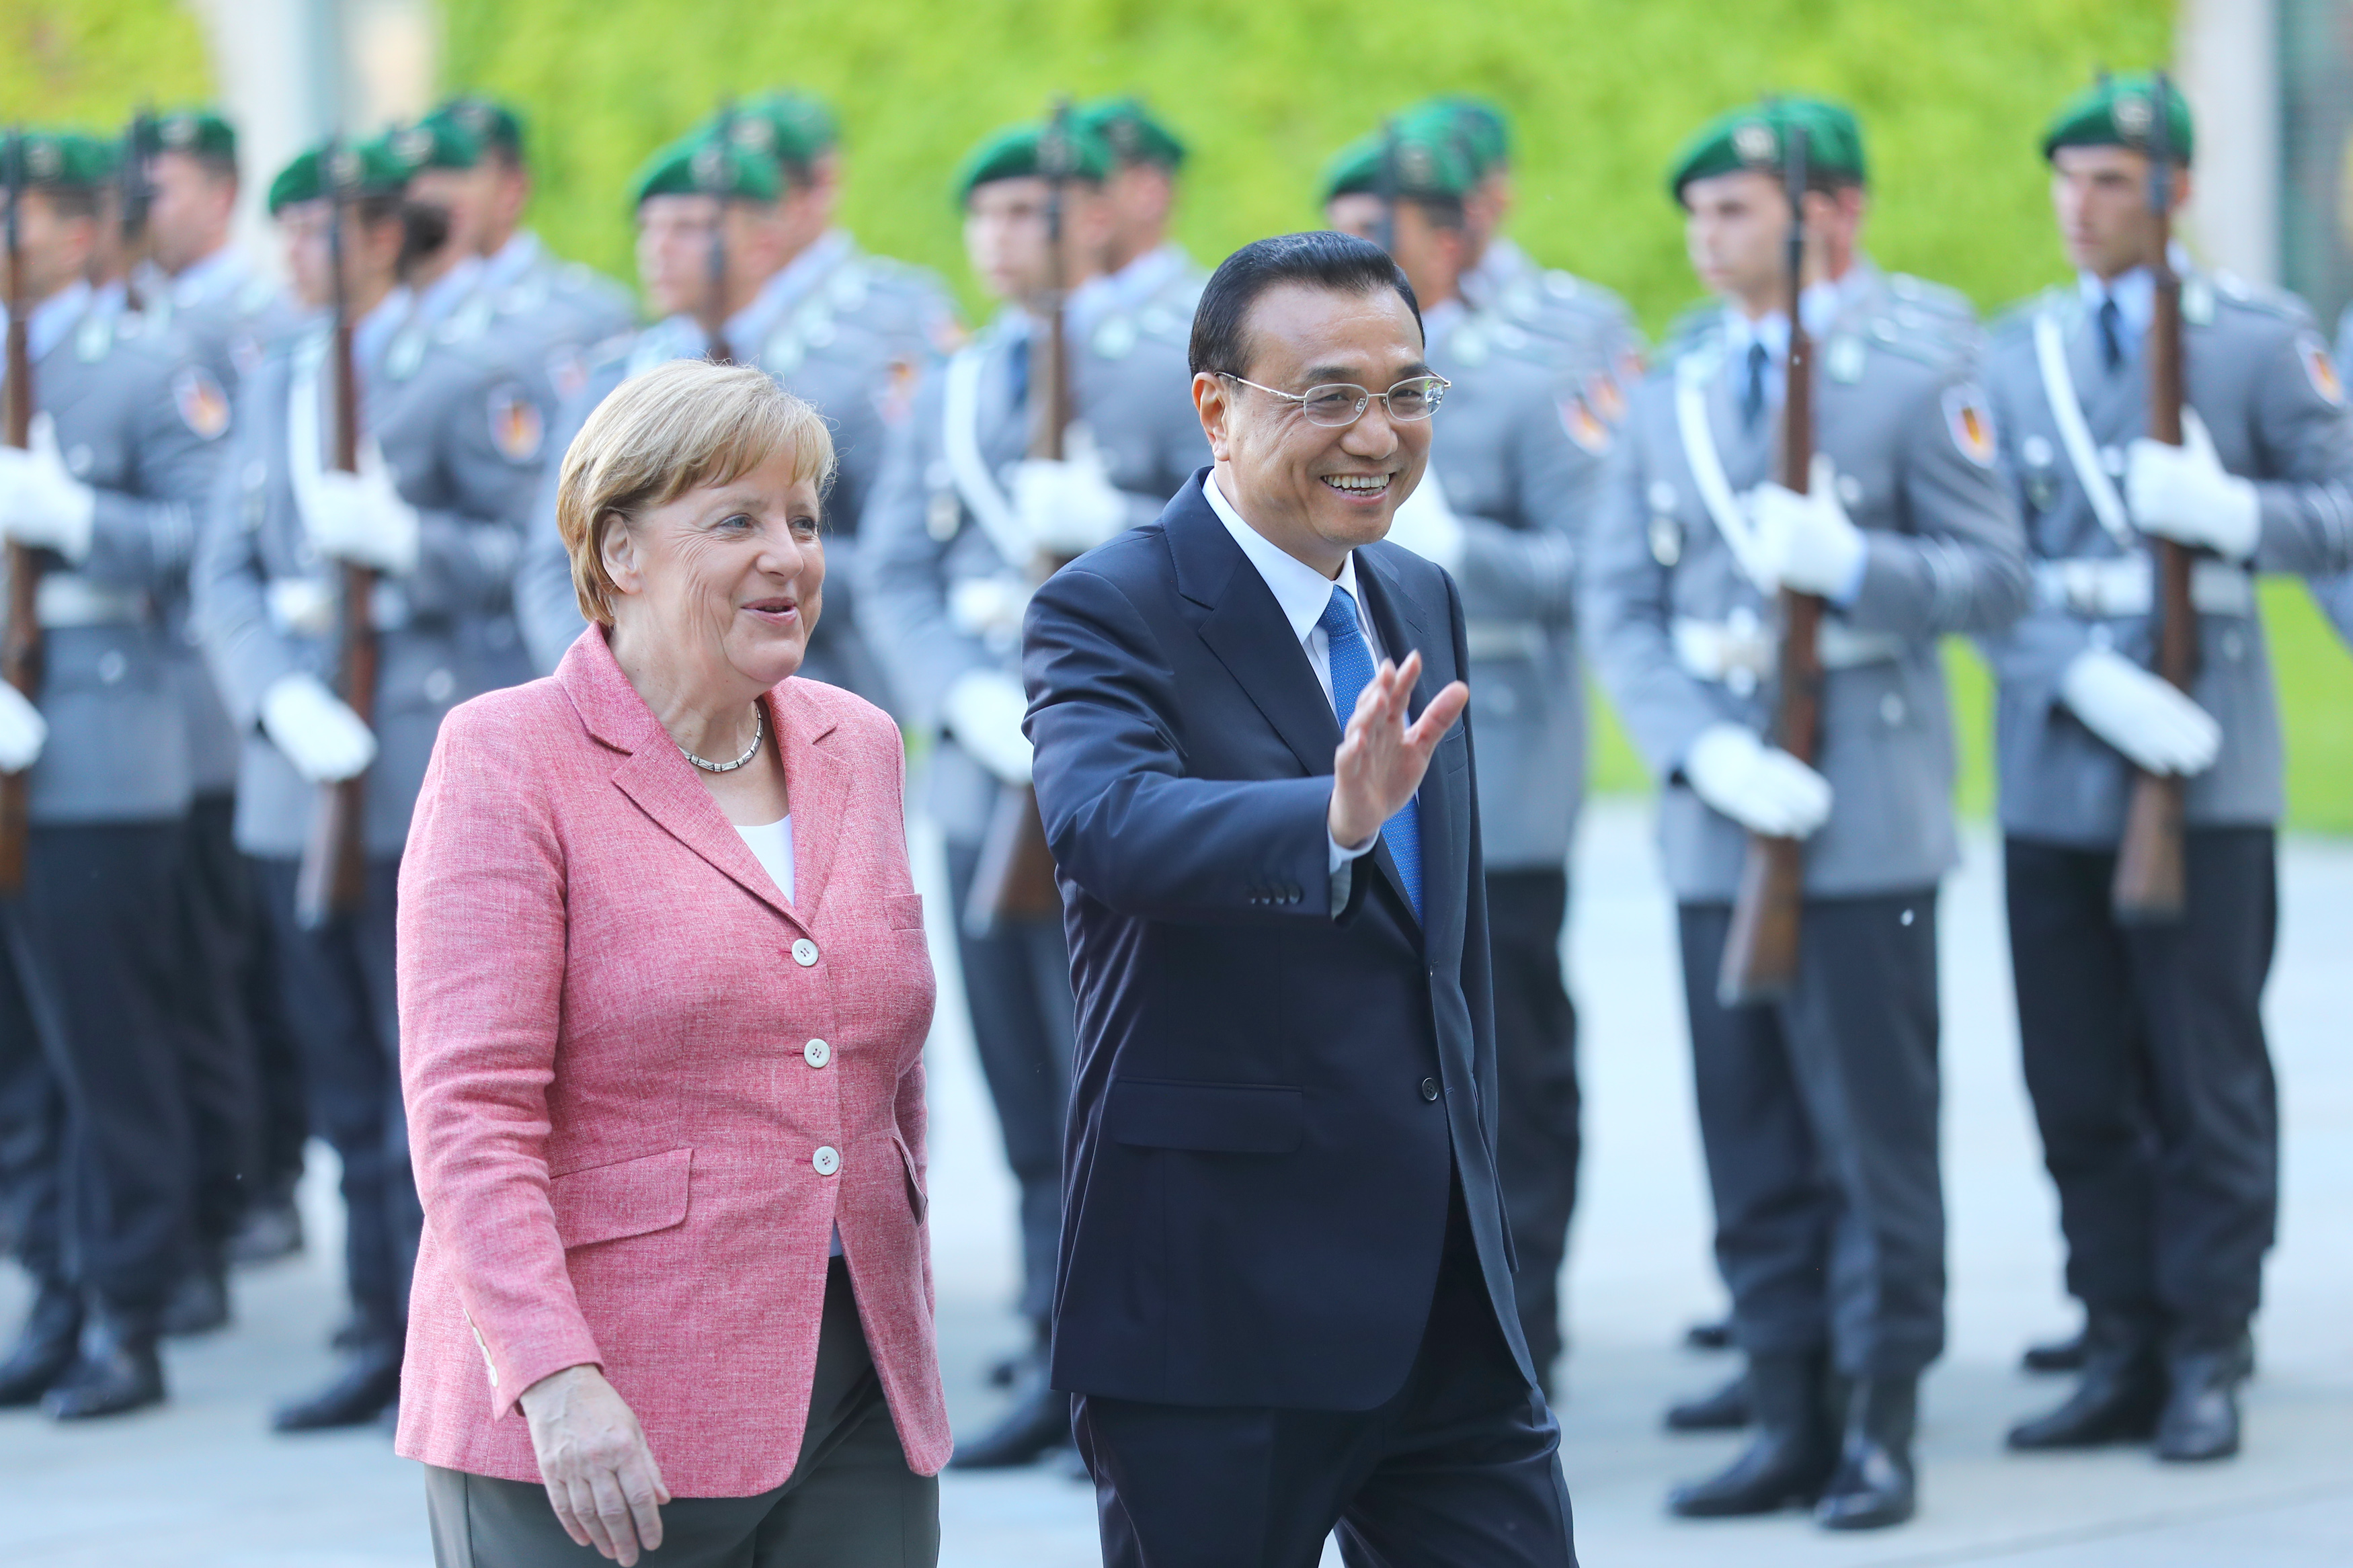 German Chancellor Angela Merkel and Chinese Premier Li Keqiang review the guard of honour during a welcome ceremony at the Chancellery in Berlin, Germany, May 31, 2017. REUTERS/Hannibal Hanschke